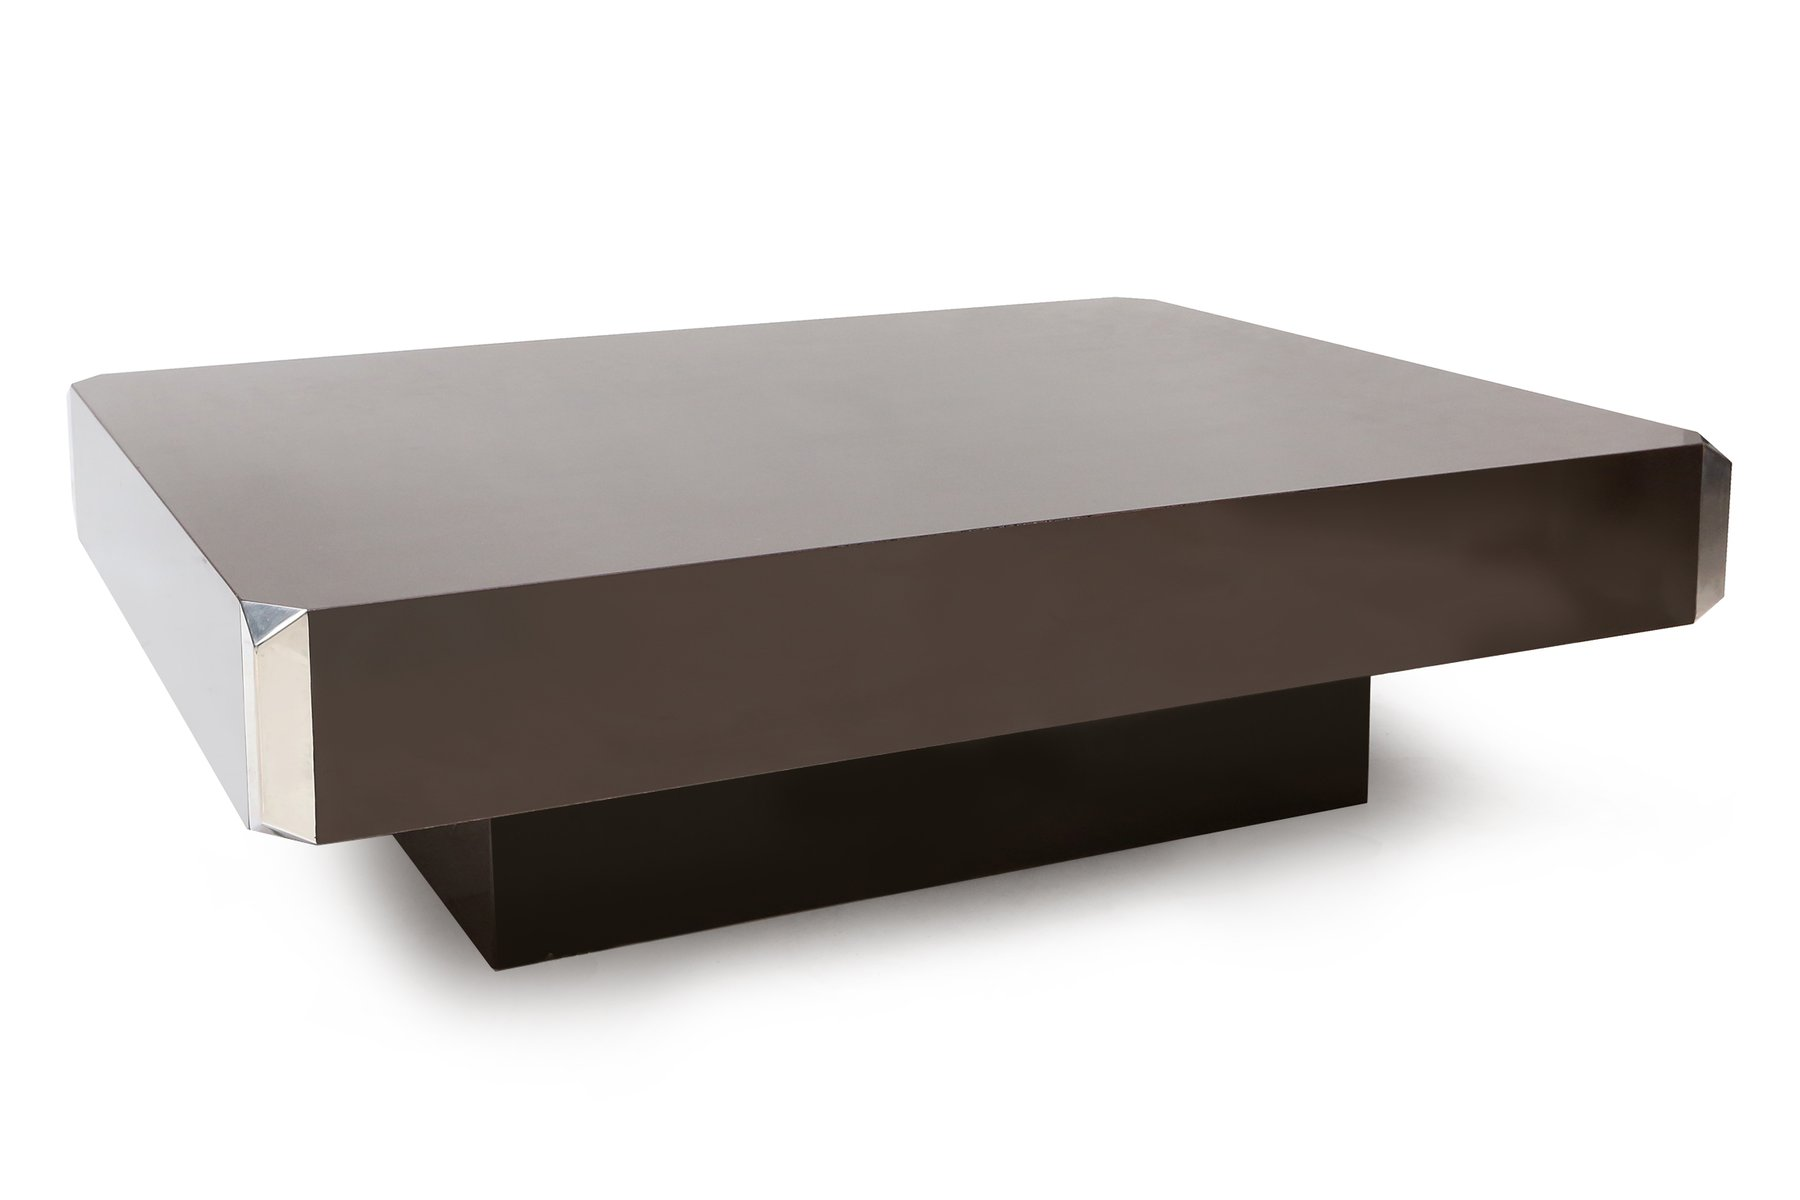 French Coffee Table by Willy Rizzo 1970s for sale at Pamono